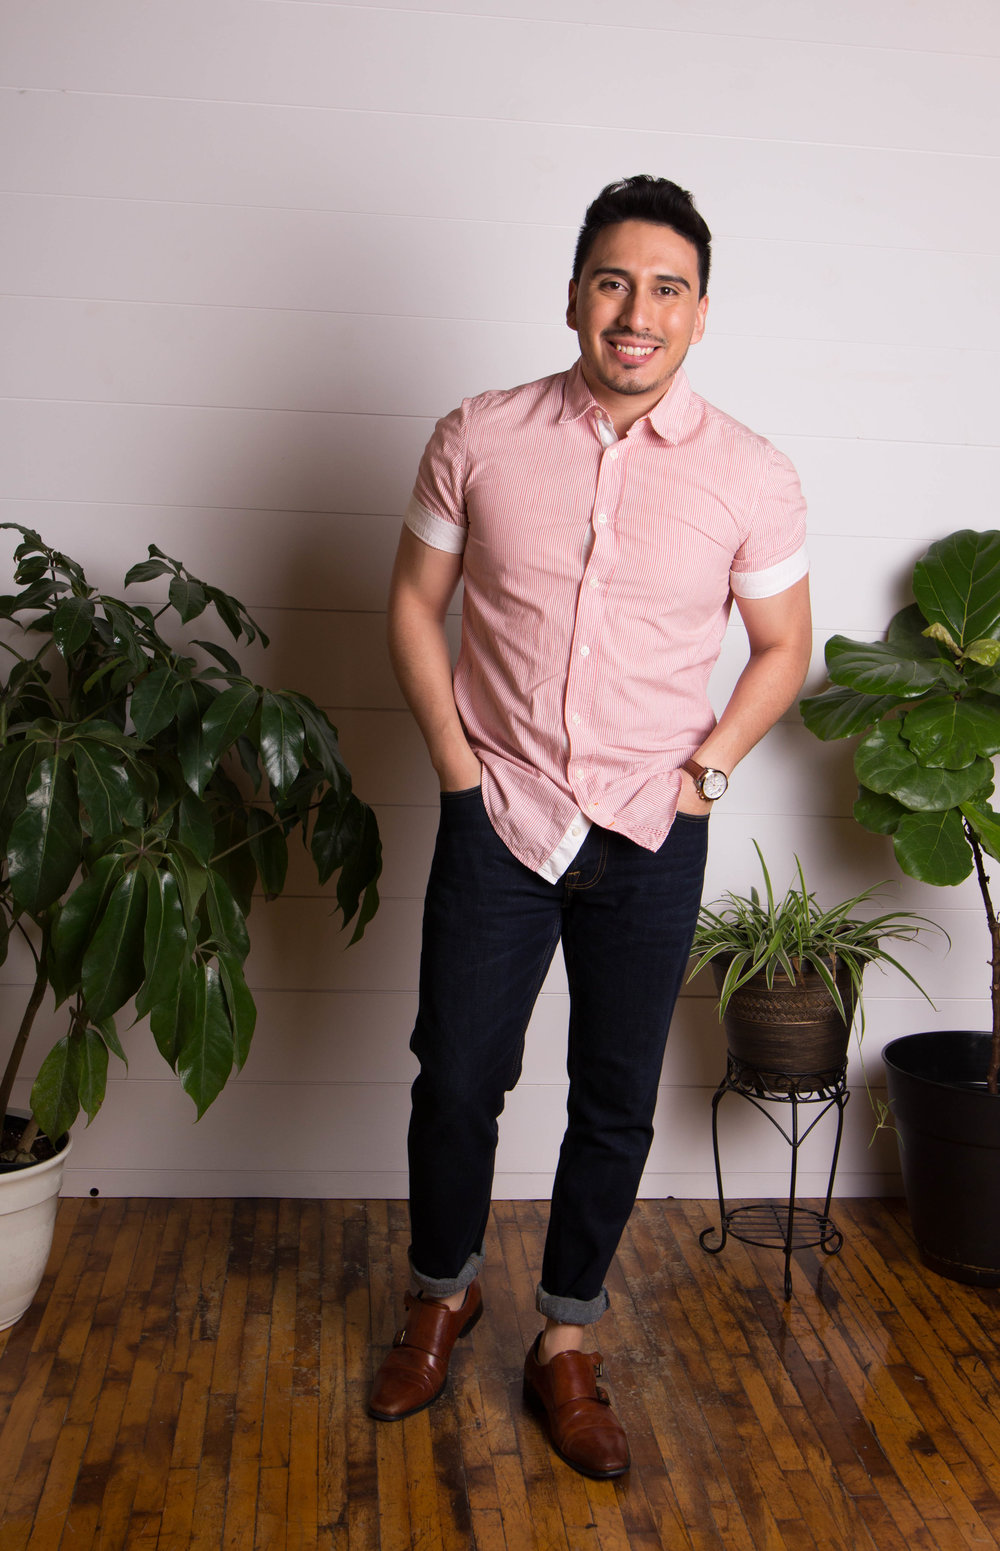 Dark denim is a casual way to look effortlessly elevated. Add a short-sleeve button up and you're ready for drinks on the patio.